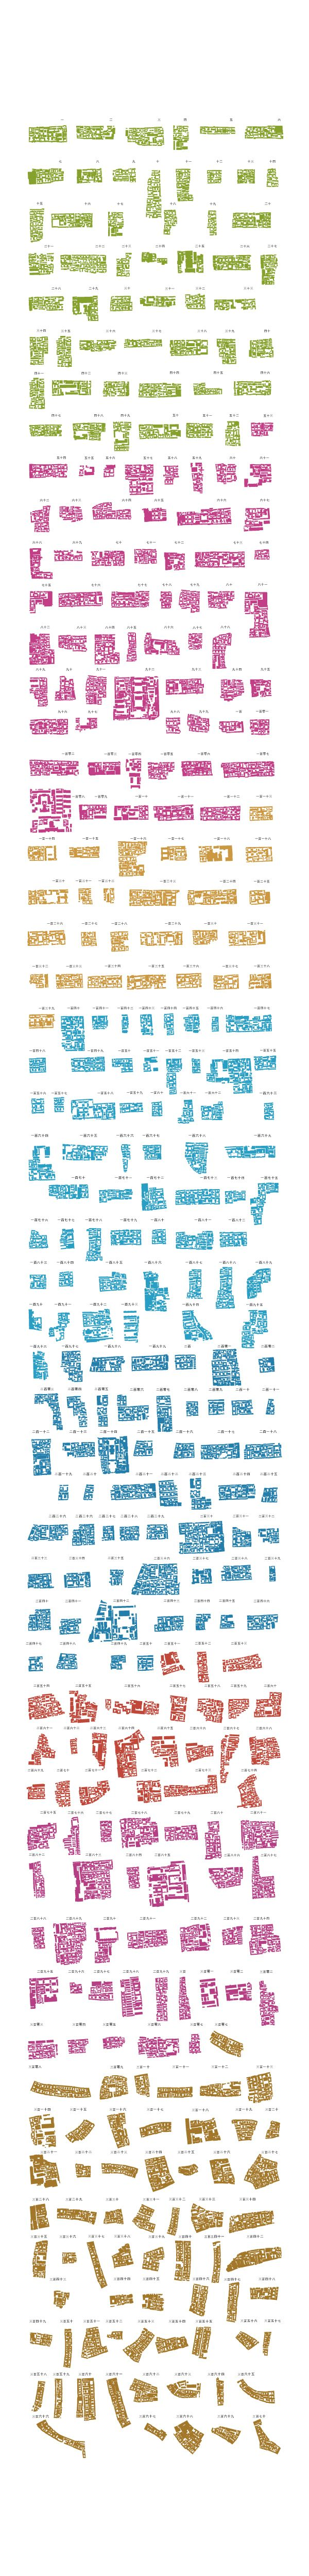 """community catalogue 2007 - by instanthutong   """"A series of 1500 communities of courtyard houses cut out and isolated from the map of downtown beijing"""""""